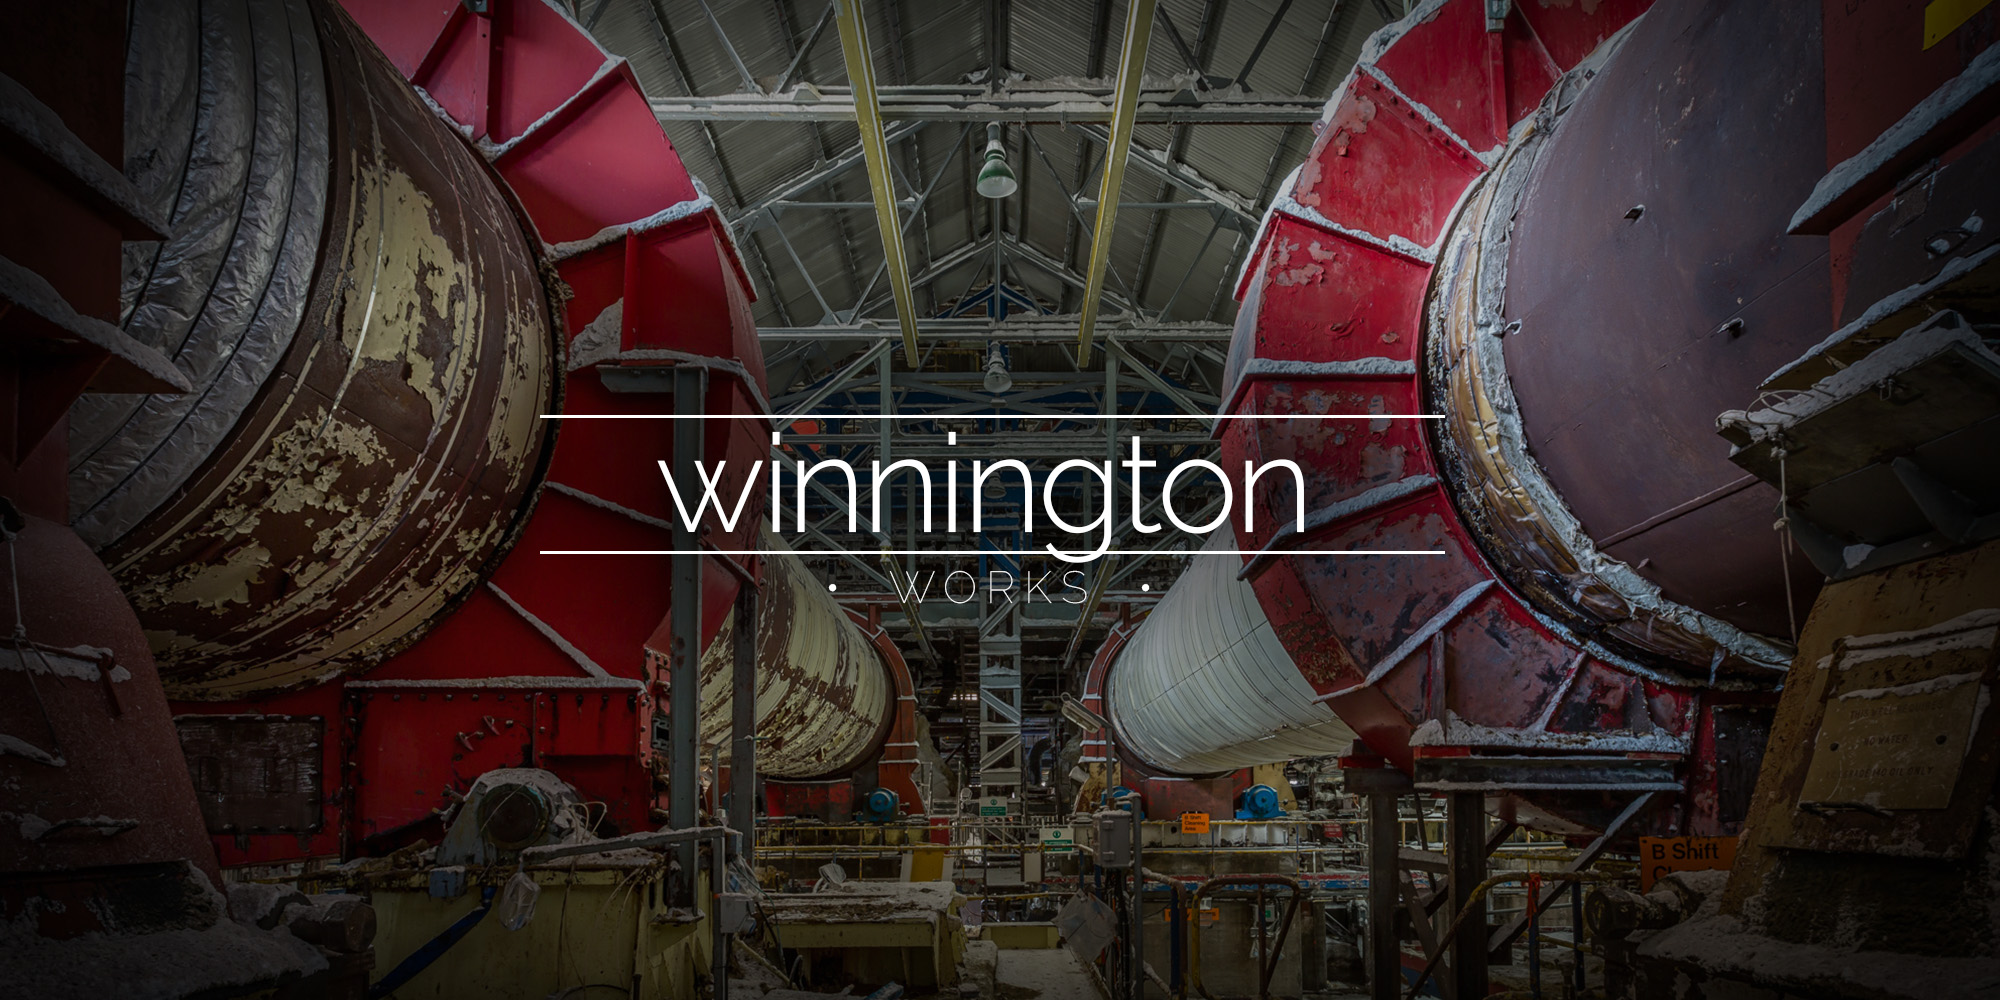 Winnington Works, Brunner mond, ICI, Tata - Northwich